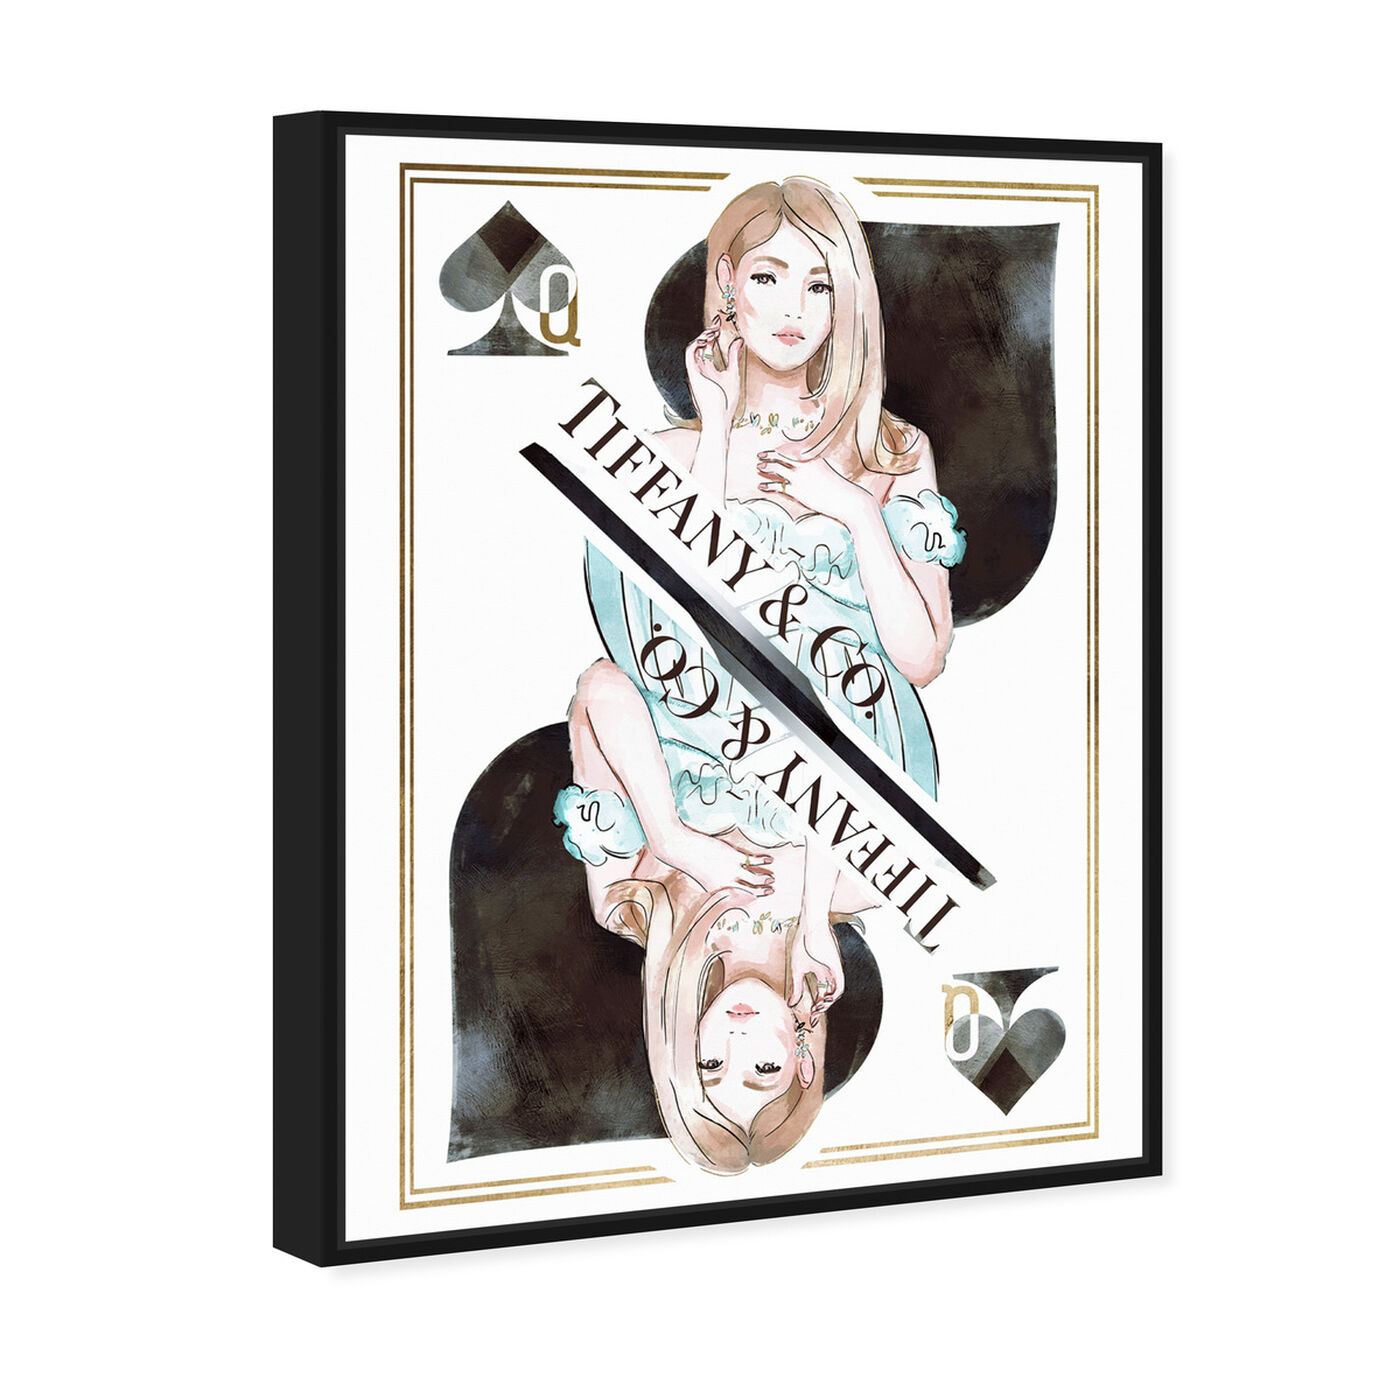 Angled view of Queen of Spades Precious featuring fashion and glam and outfits art.